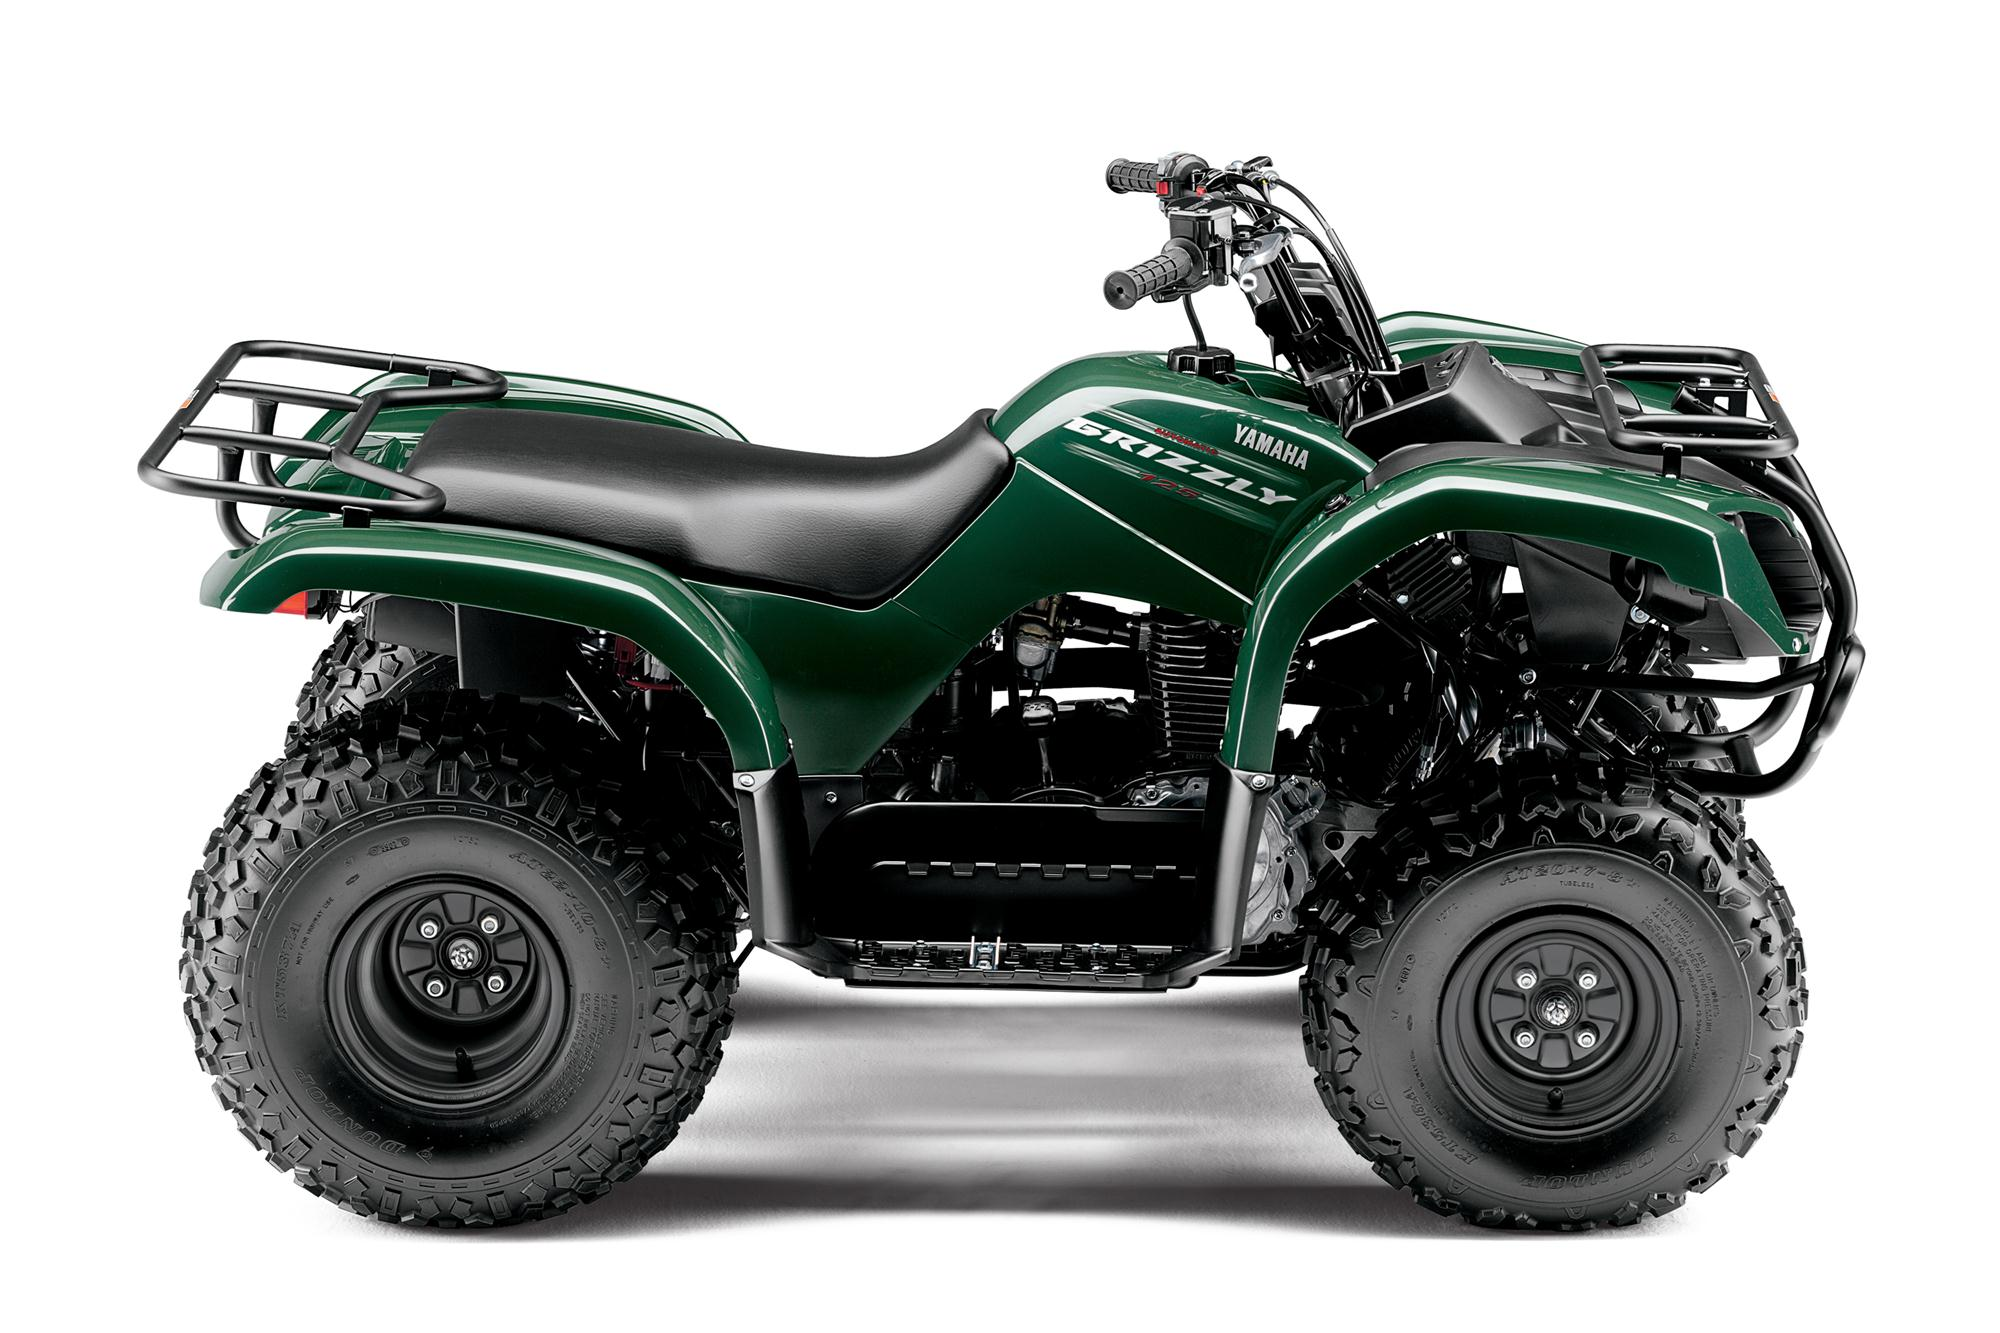 2013 yamaha grizzly 125 automatic the easy way to mastering atvs autoevolution. Black Bedroom Furniture Sets. Home Design Ideas